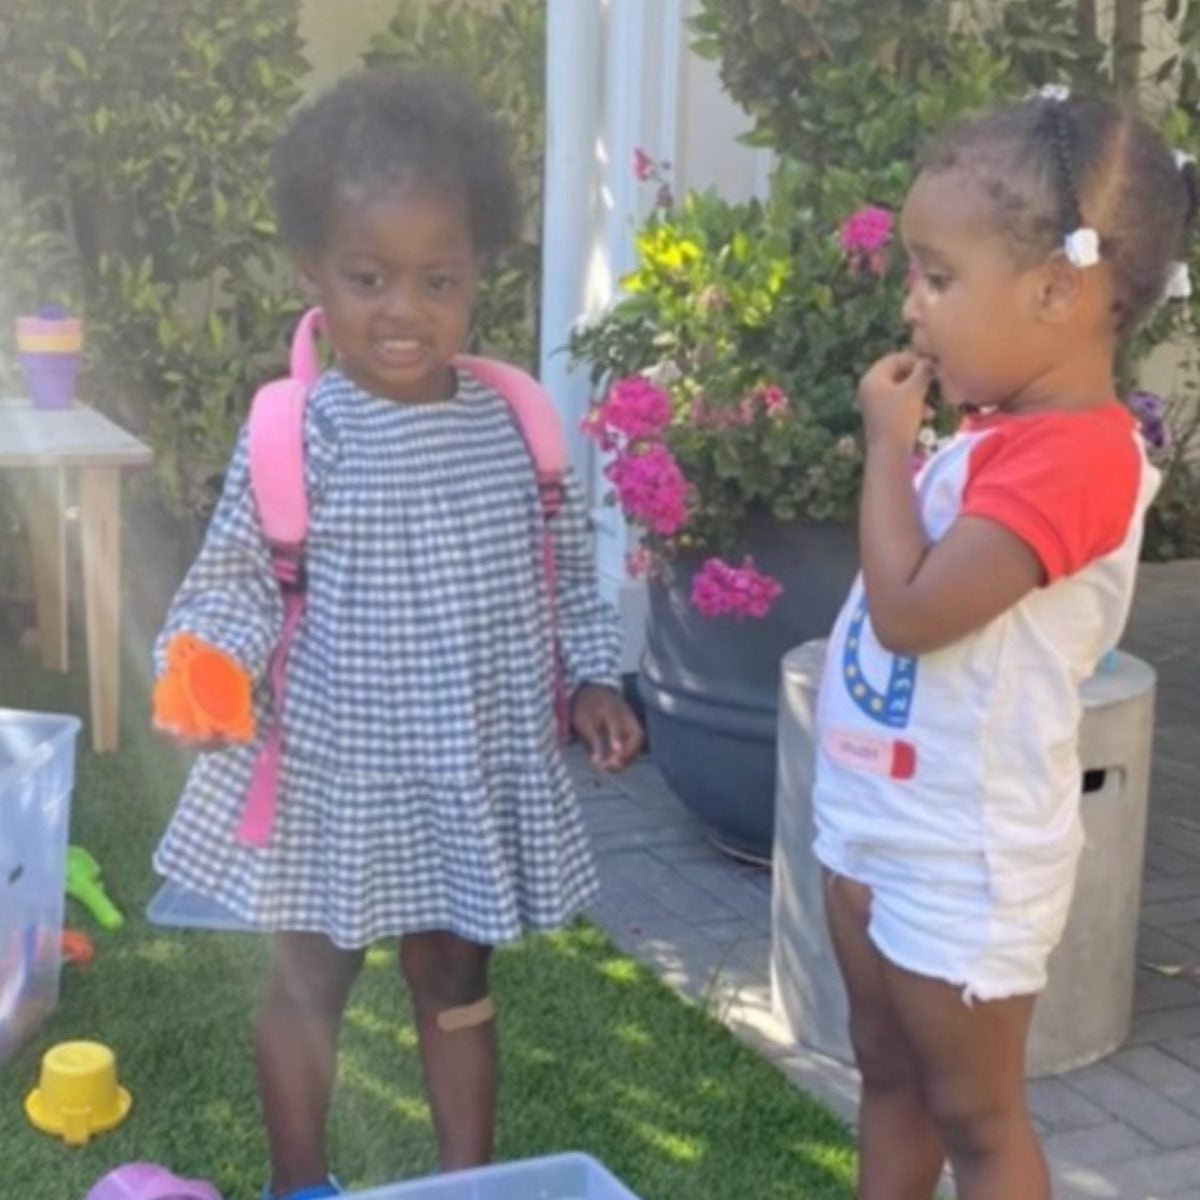 The Girls Are Playing: Celeb Kids Kaavia And Cairo Had Another Cute Playdate